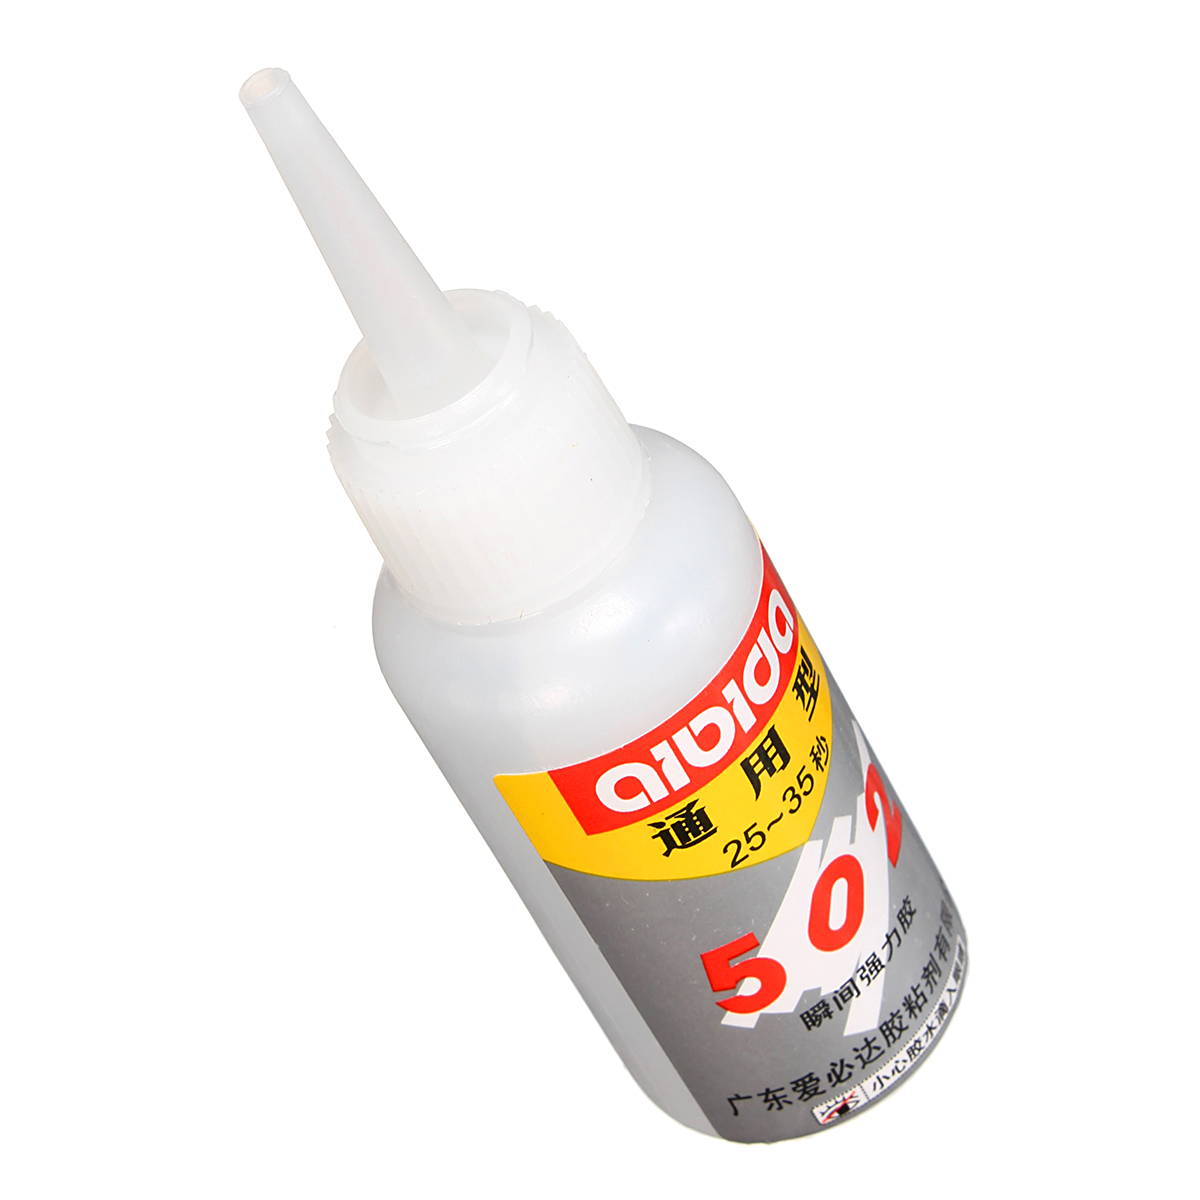 Super Glue 502 Instant Quick Drying Adhesive Fast Strong Bond for Leather  Rubber Metal 15g